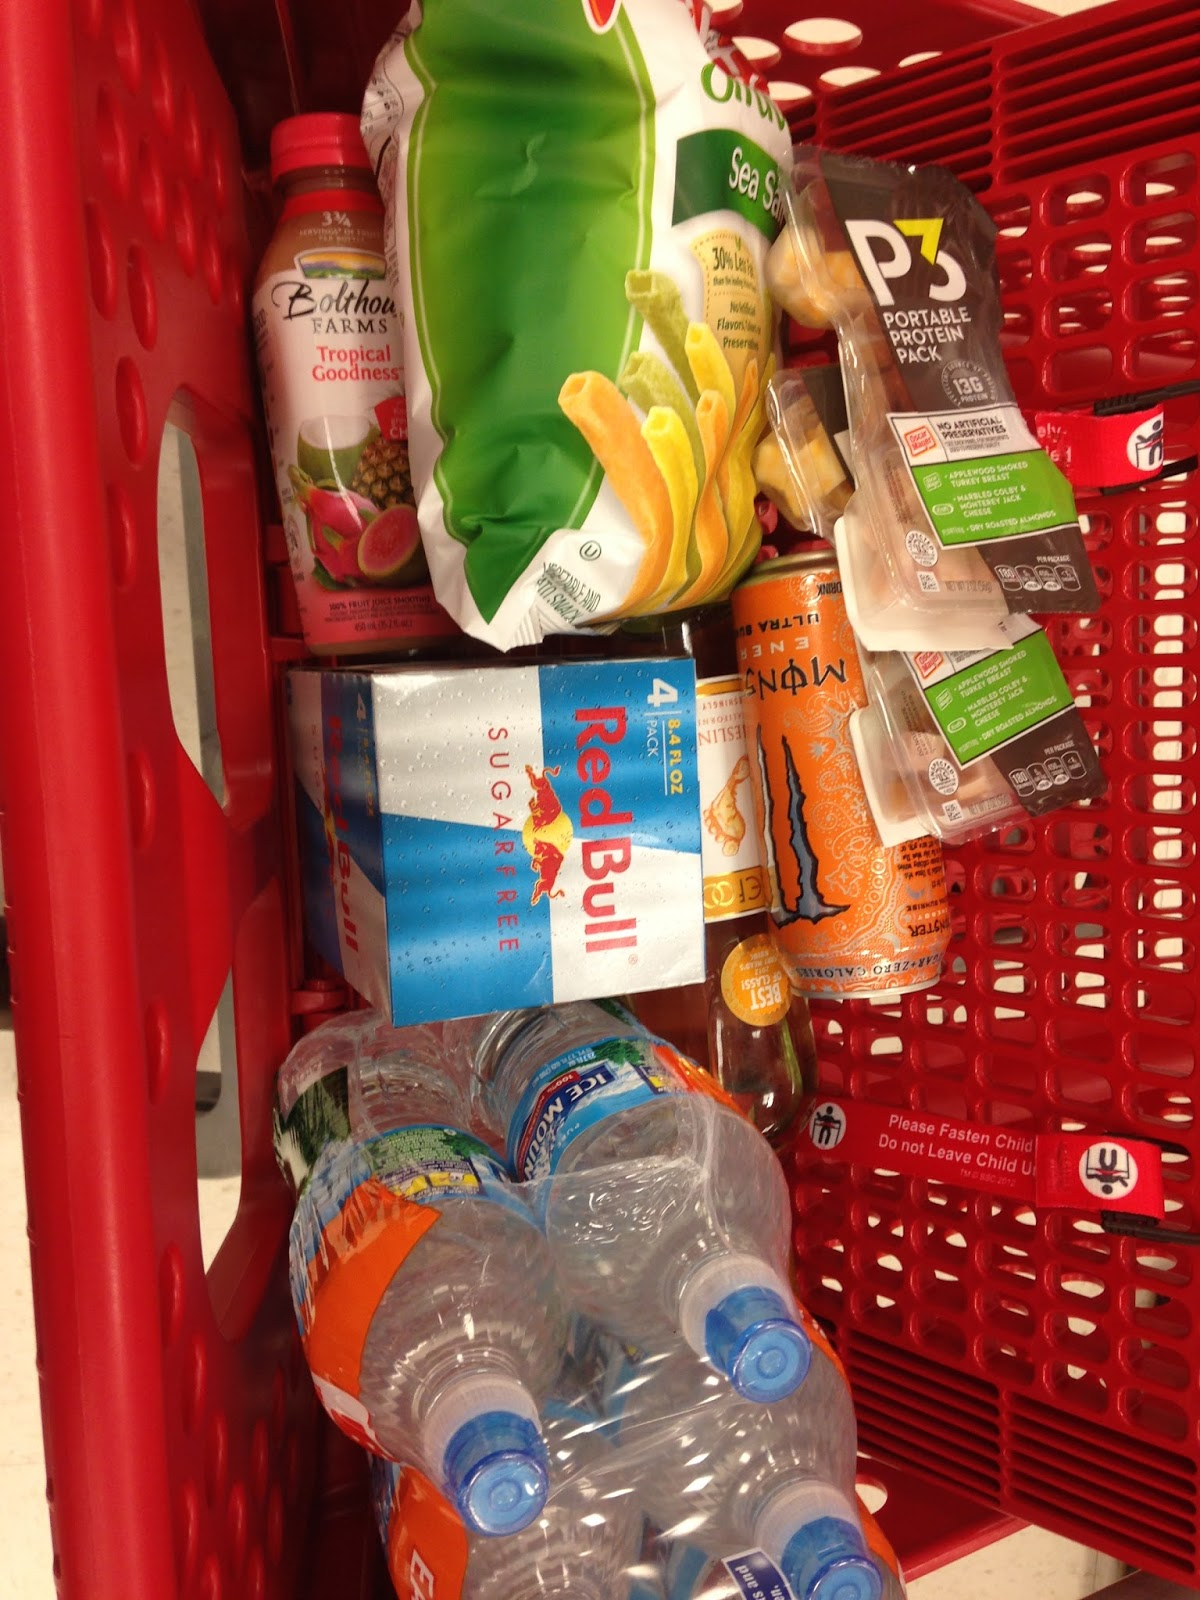 I need my carrots august 2015 this is what a trip to target looks like with no children malvernweather Gallery